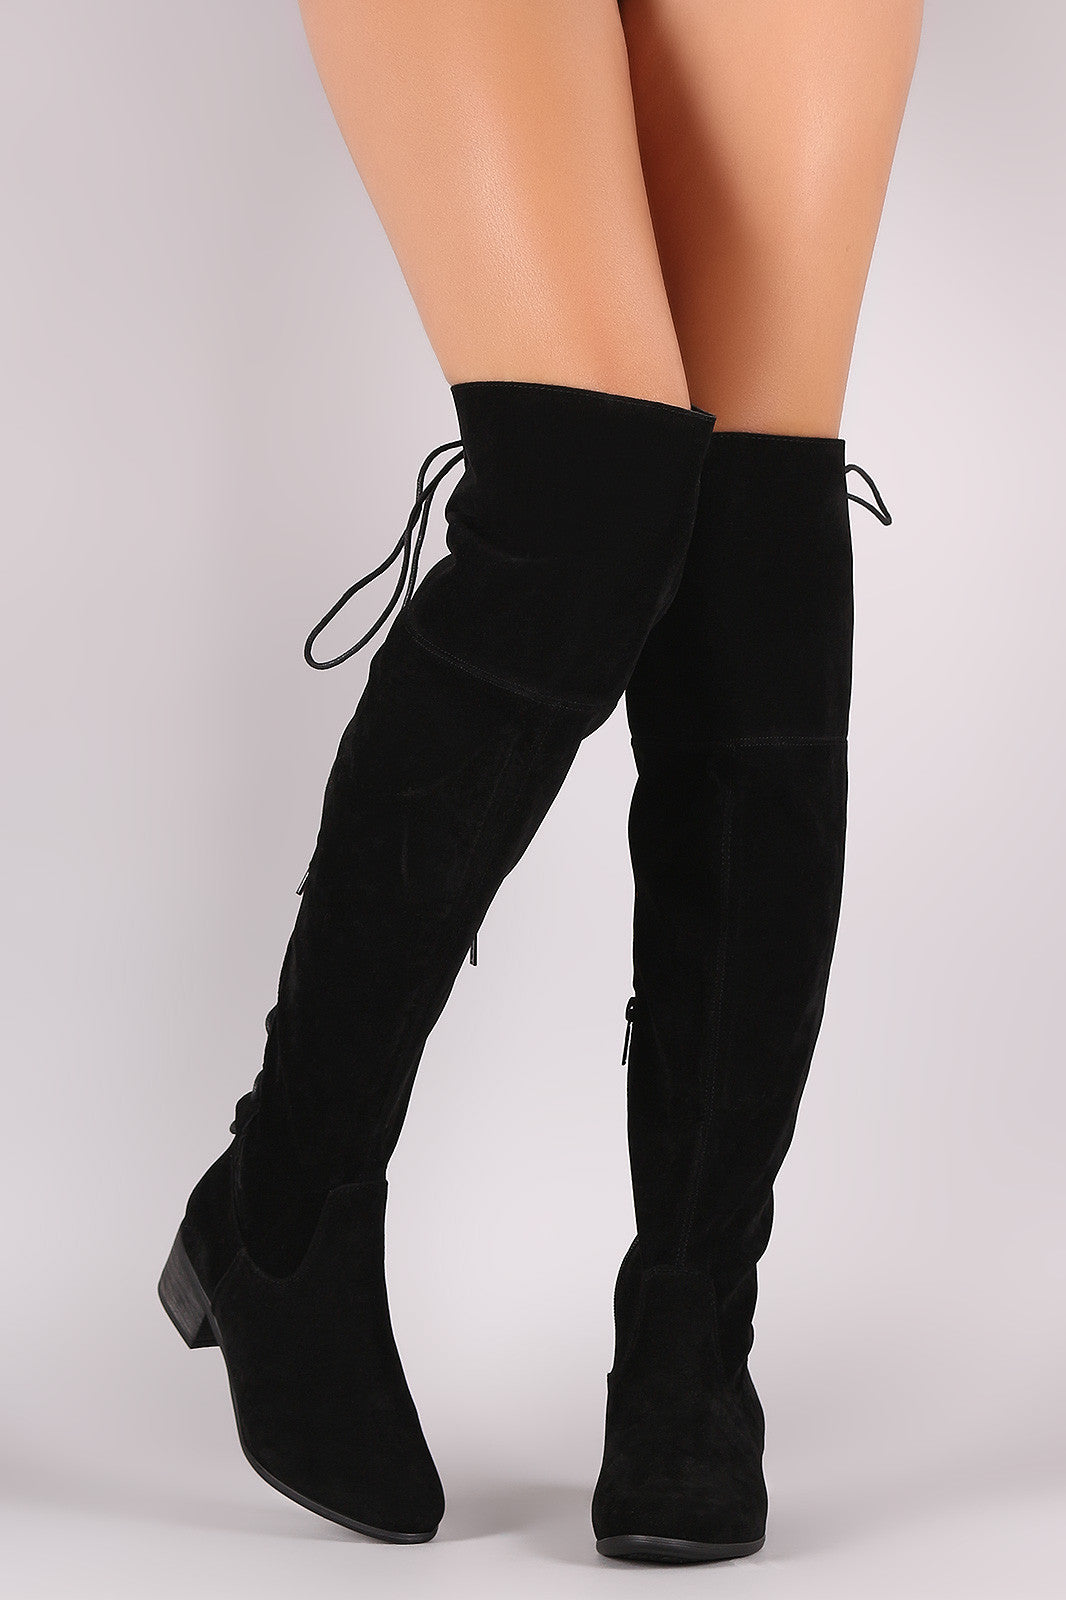 Maeve Lave Up Back Boots - Black - Hapa Clothing - 4